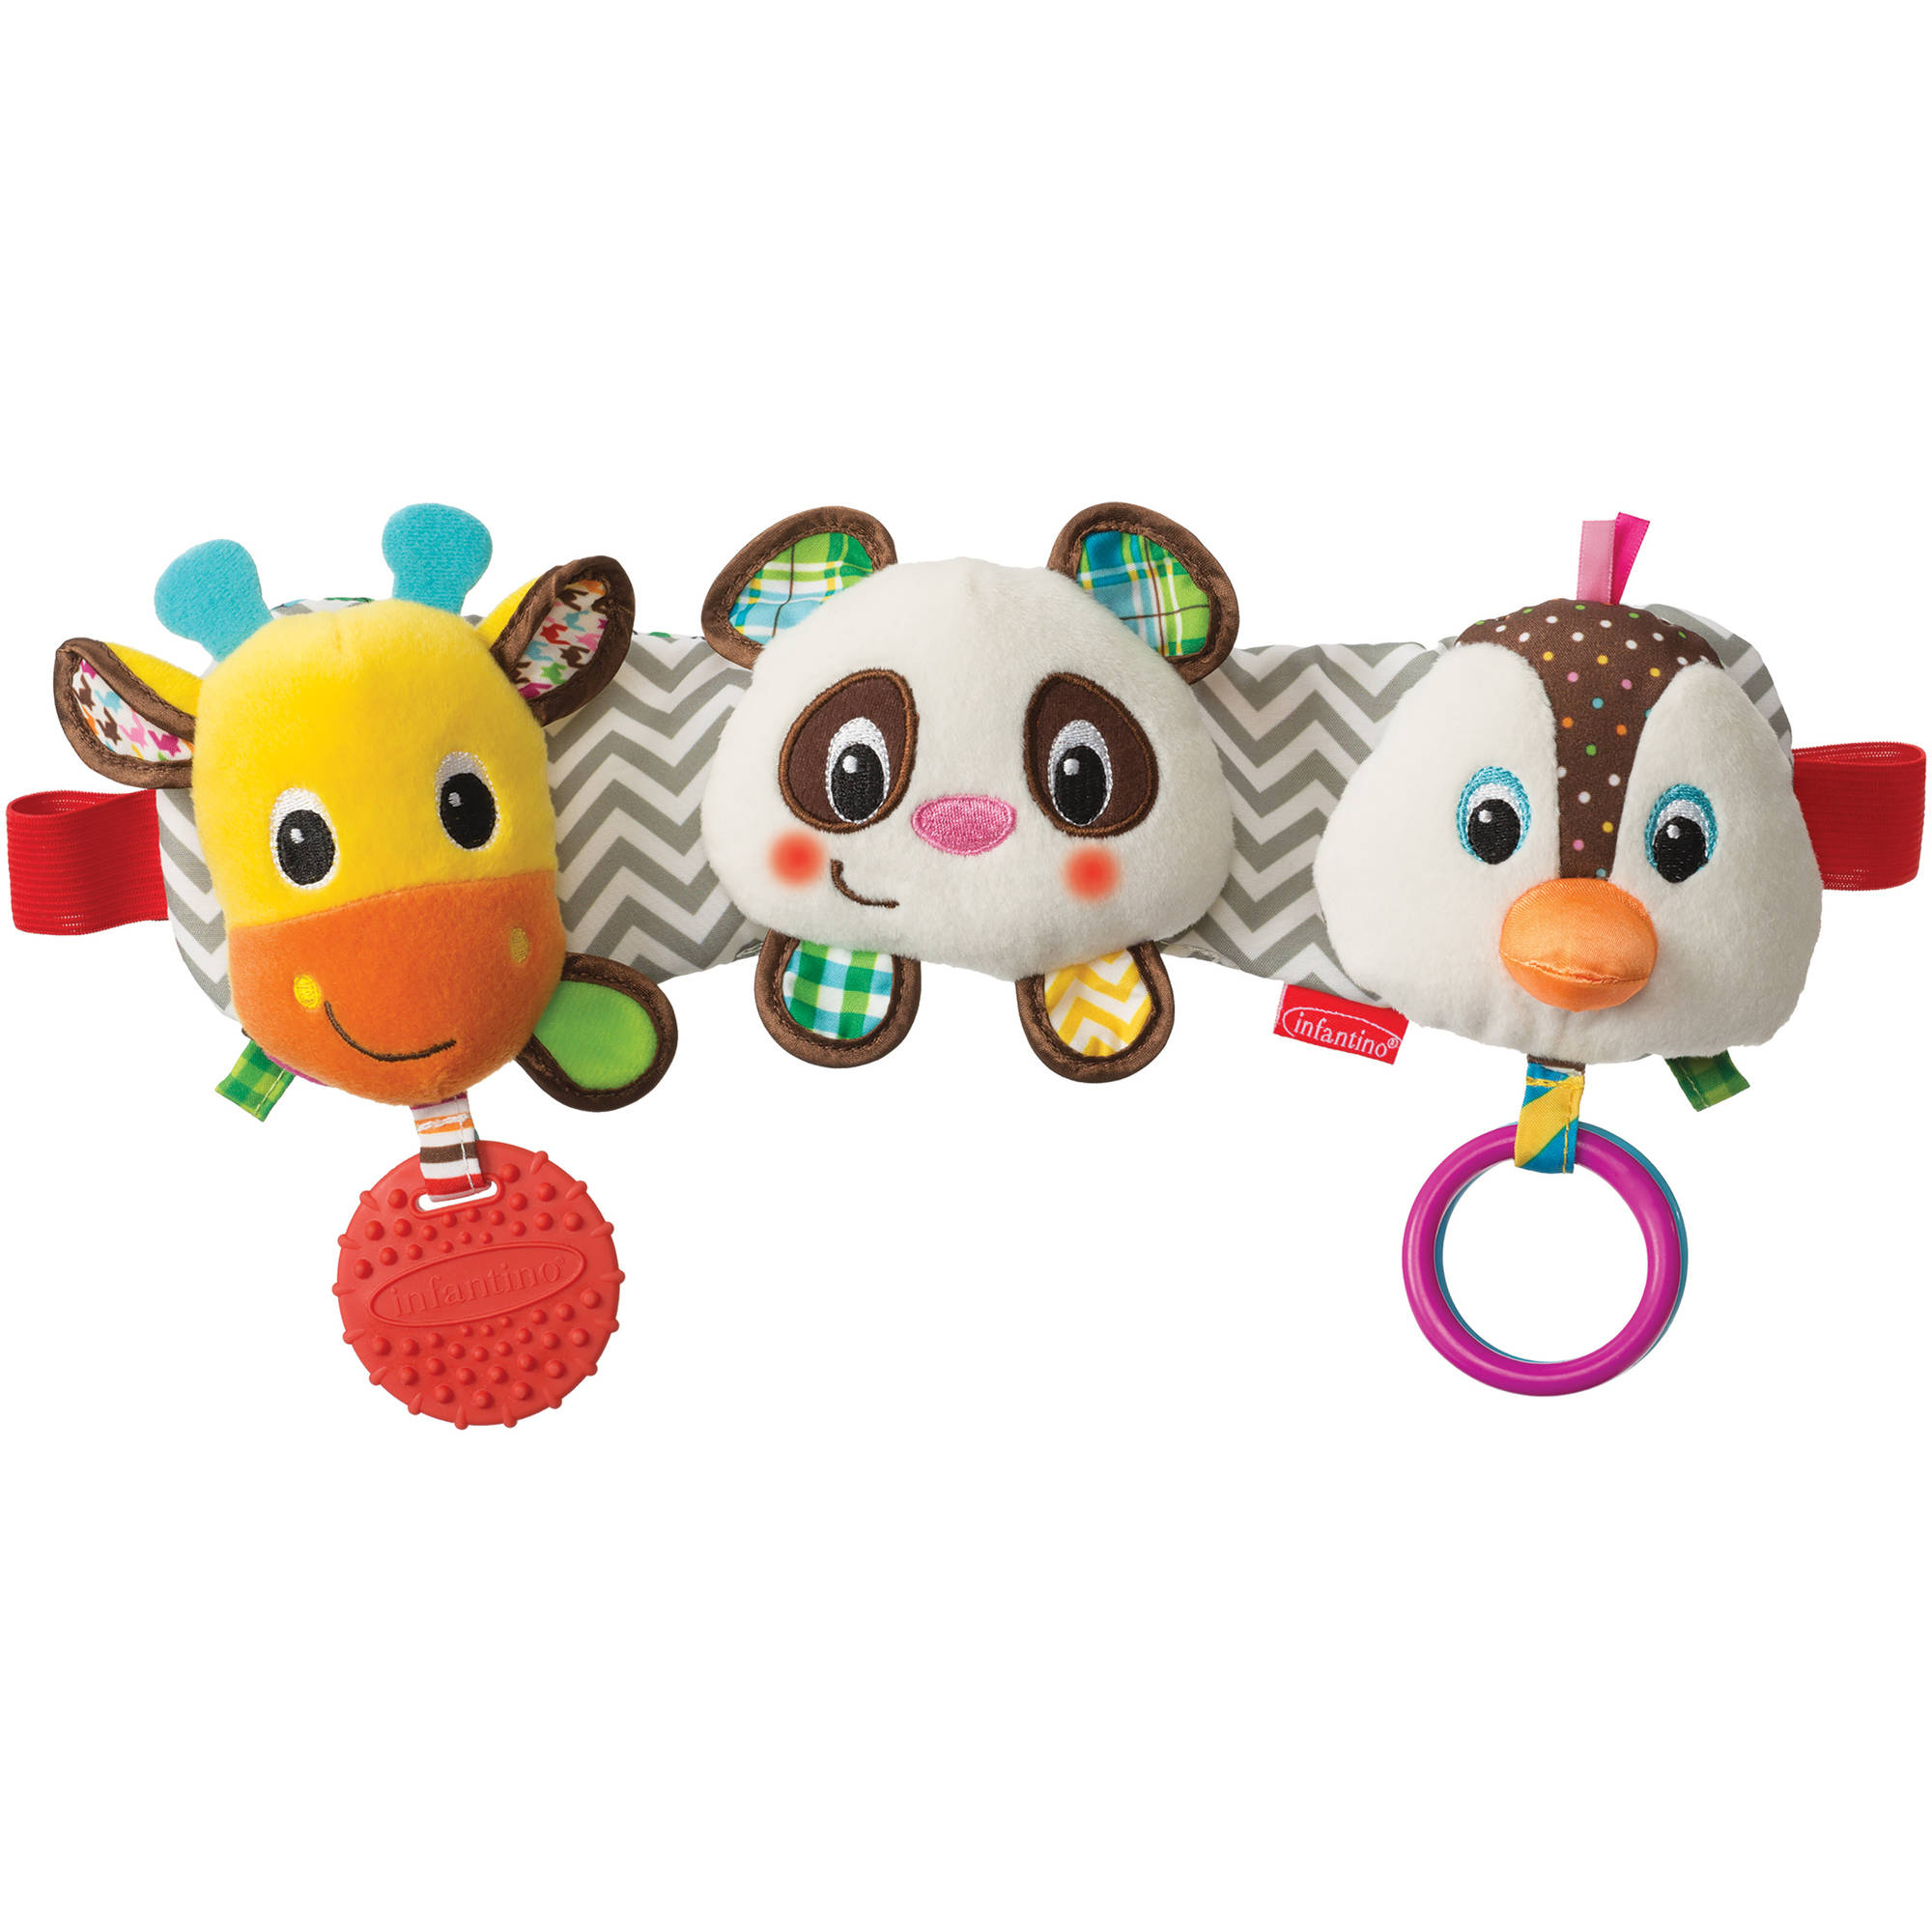 Infantino See Play Go Stretch & Play Musical Travel Trio by Infantino